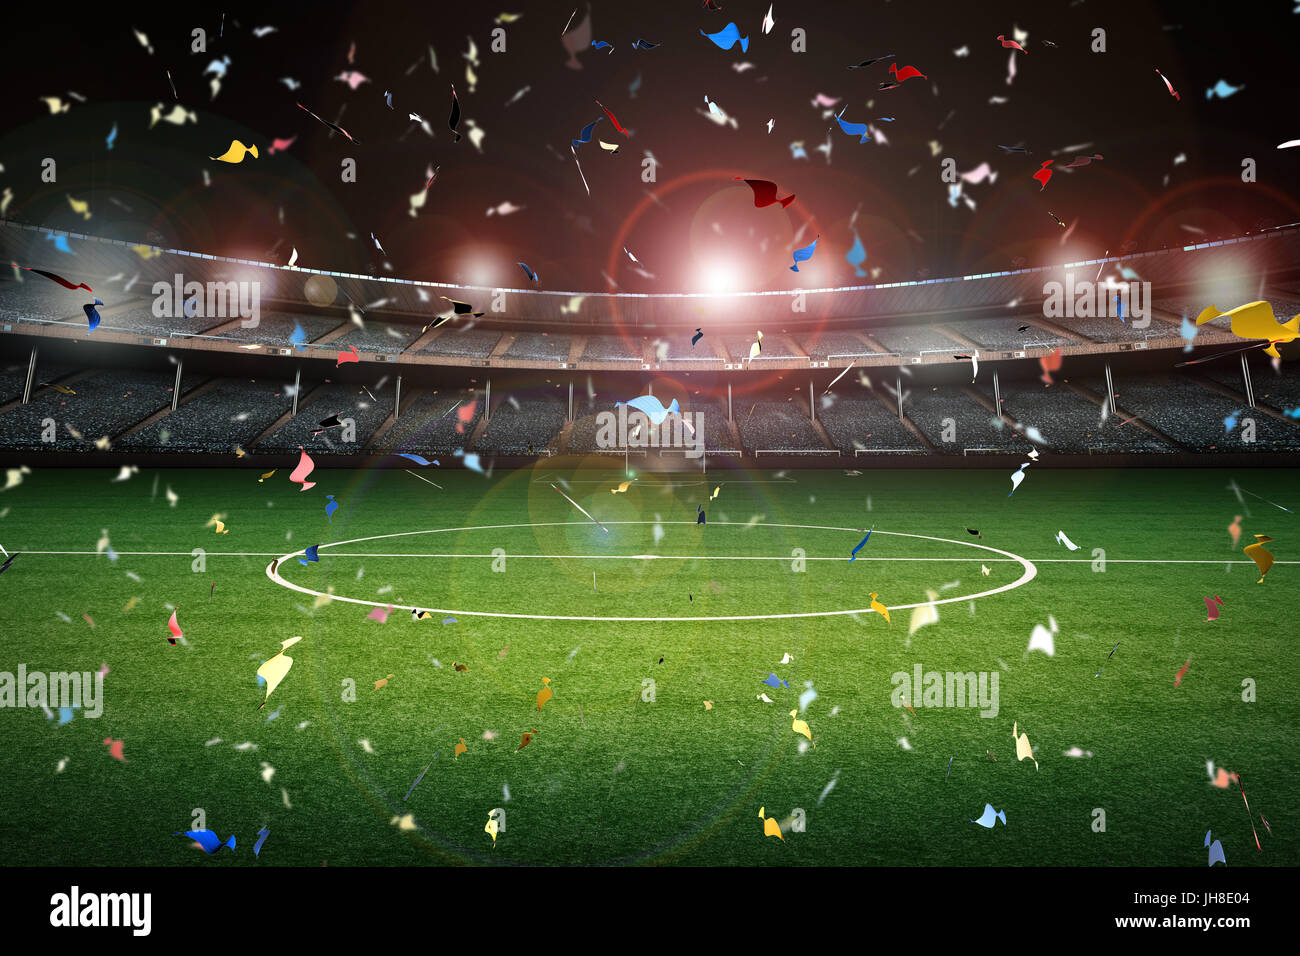 3d rendering confetti celebration with soccer field background stock photo  royalty free image